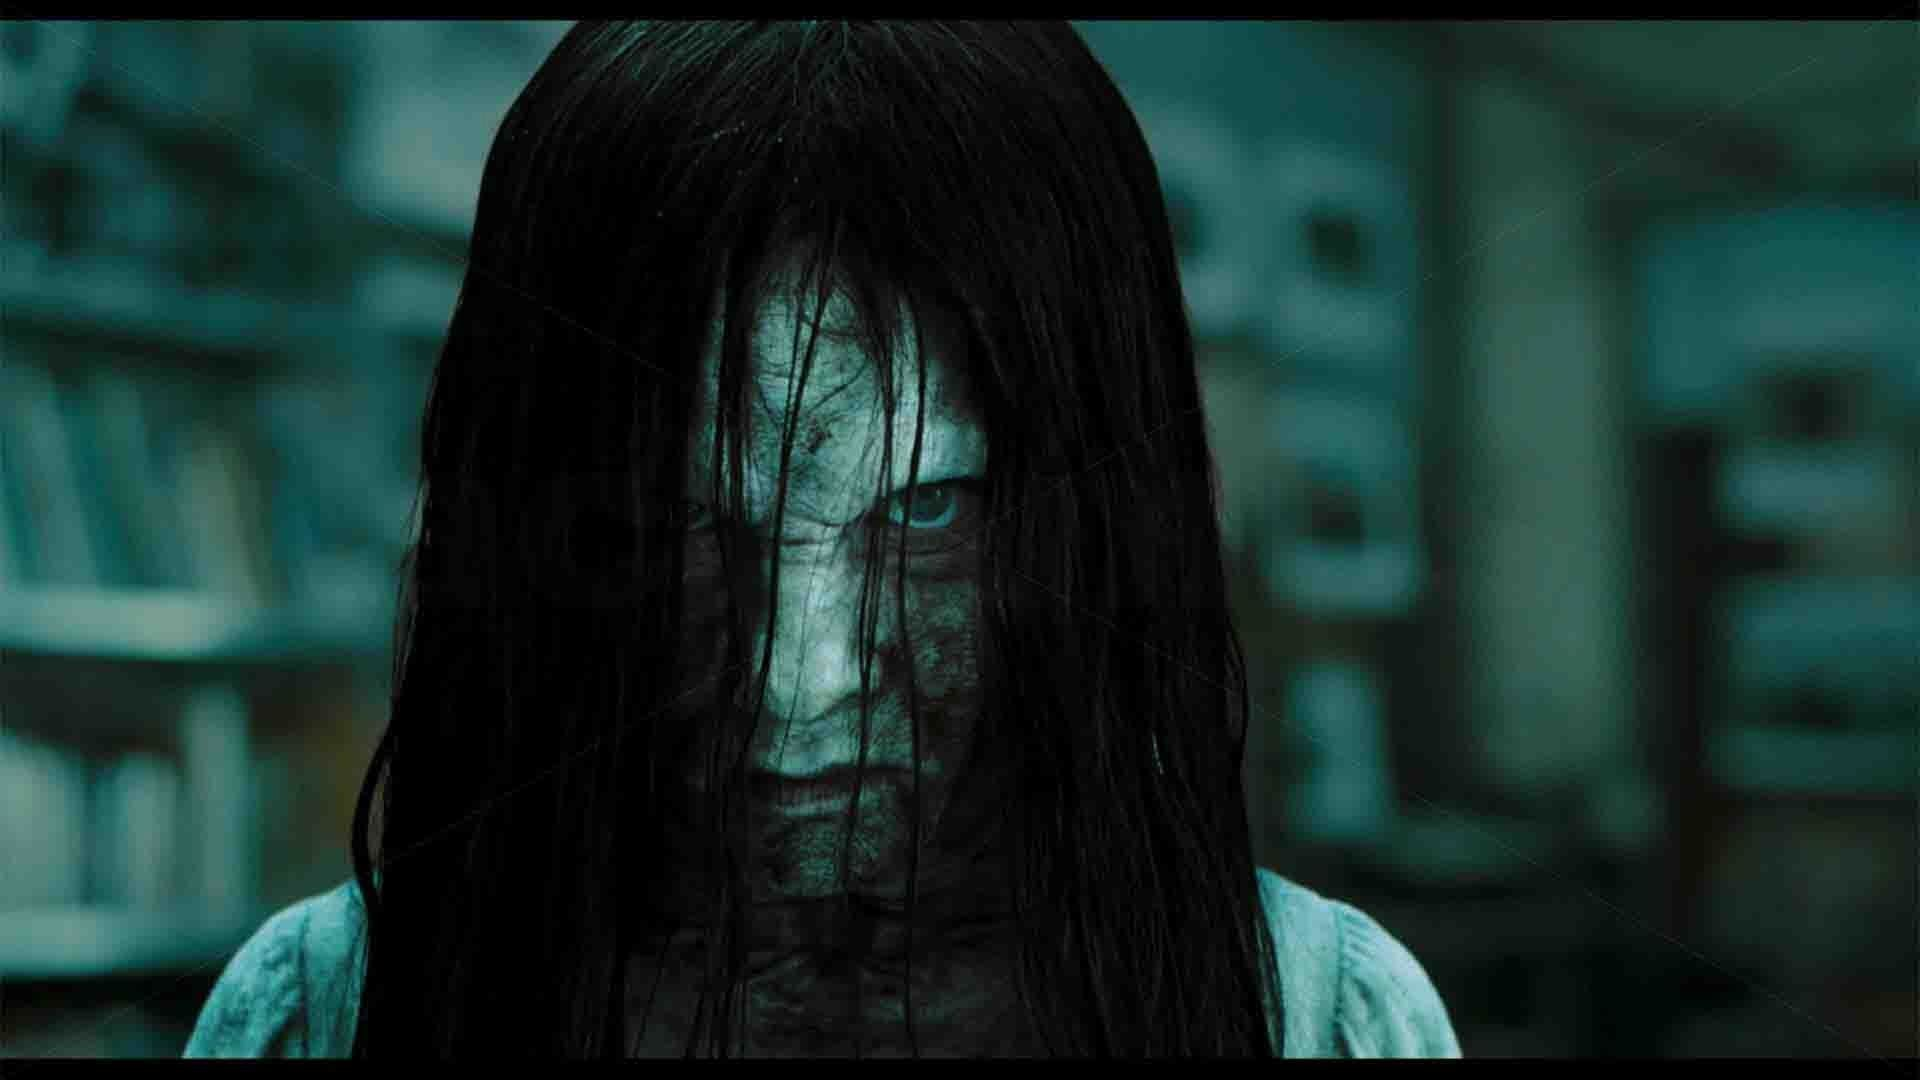 Res: 1920x1080, Scary Hd Wallpapers Horror Wallpapers For Desktop Scary Wallpapers